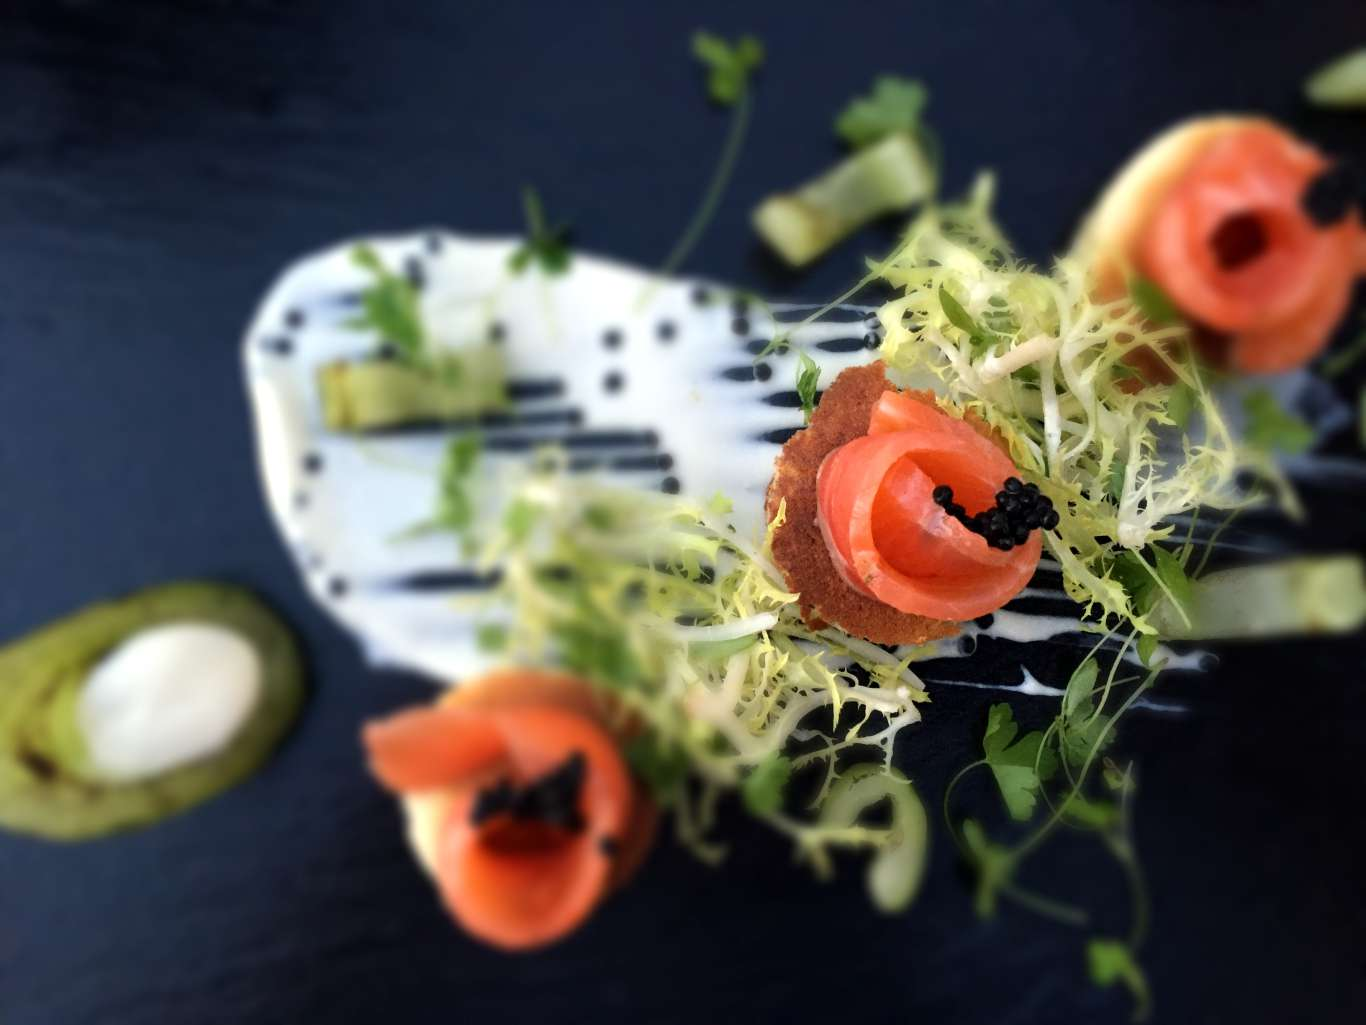 The salmon starter at Sands Hotel. Photo: Stephen Emms